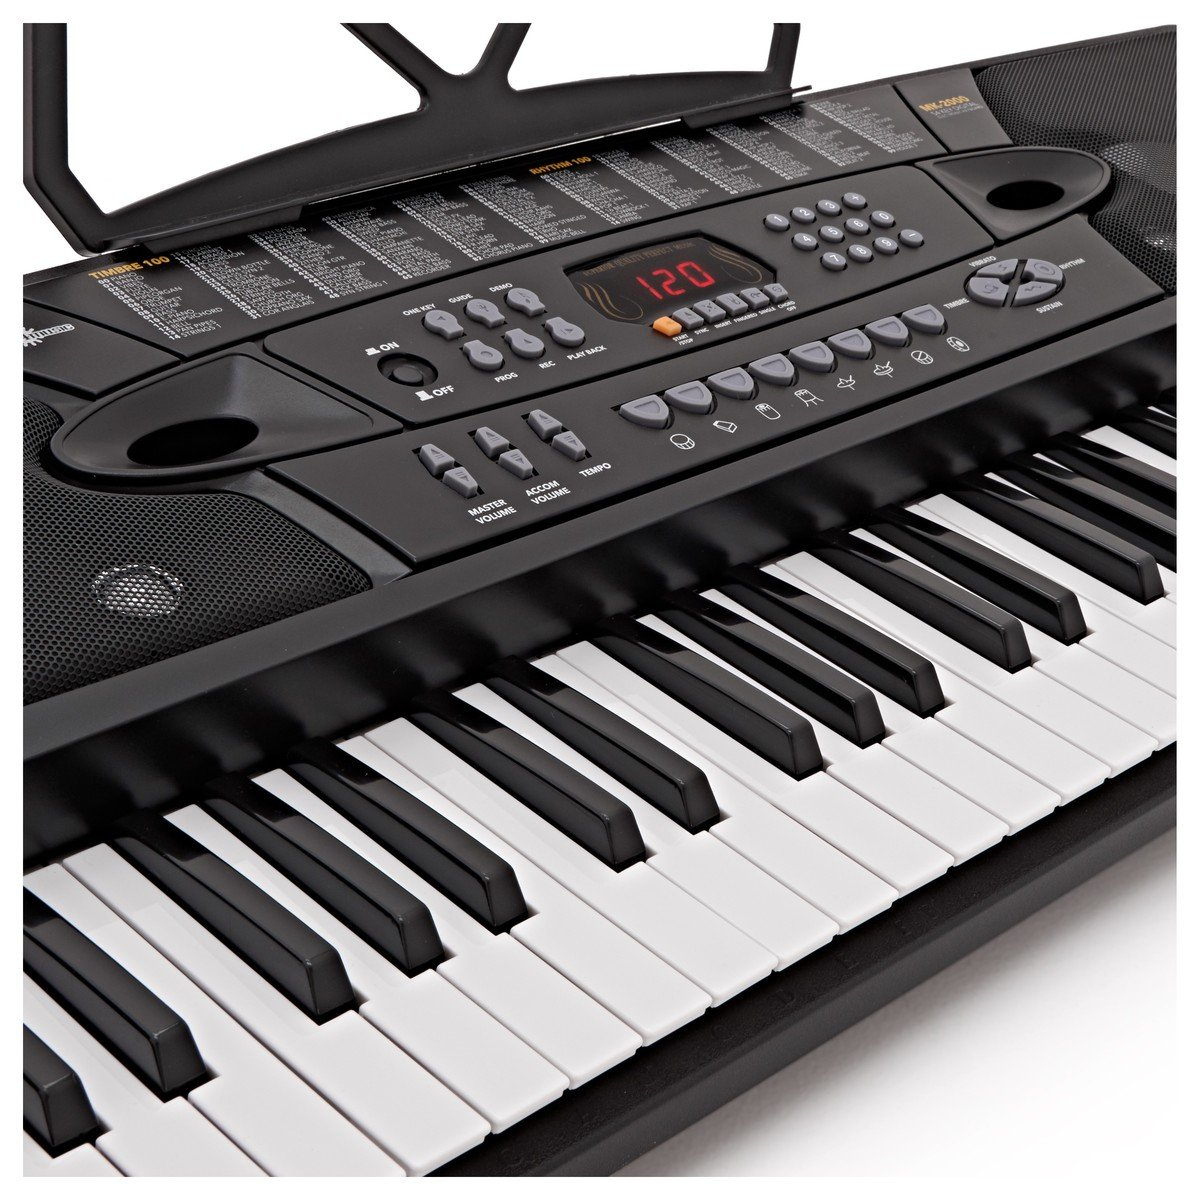 MK-2000 54-key Portable Keyboard by Gear4music